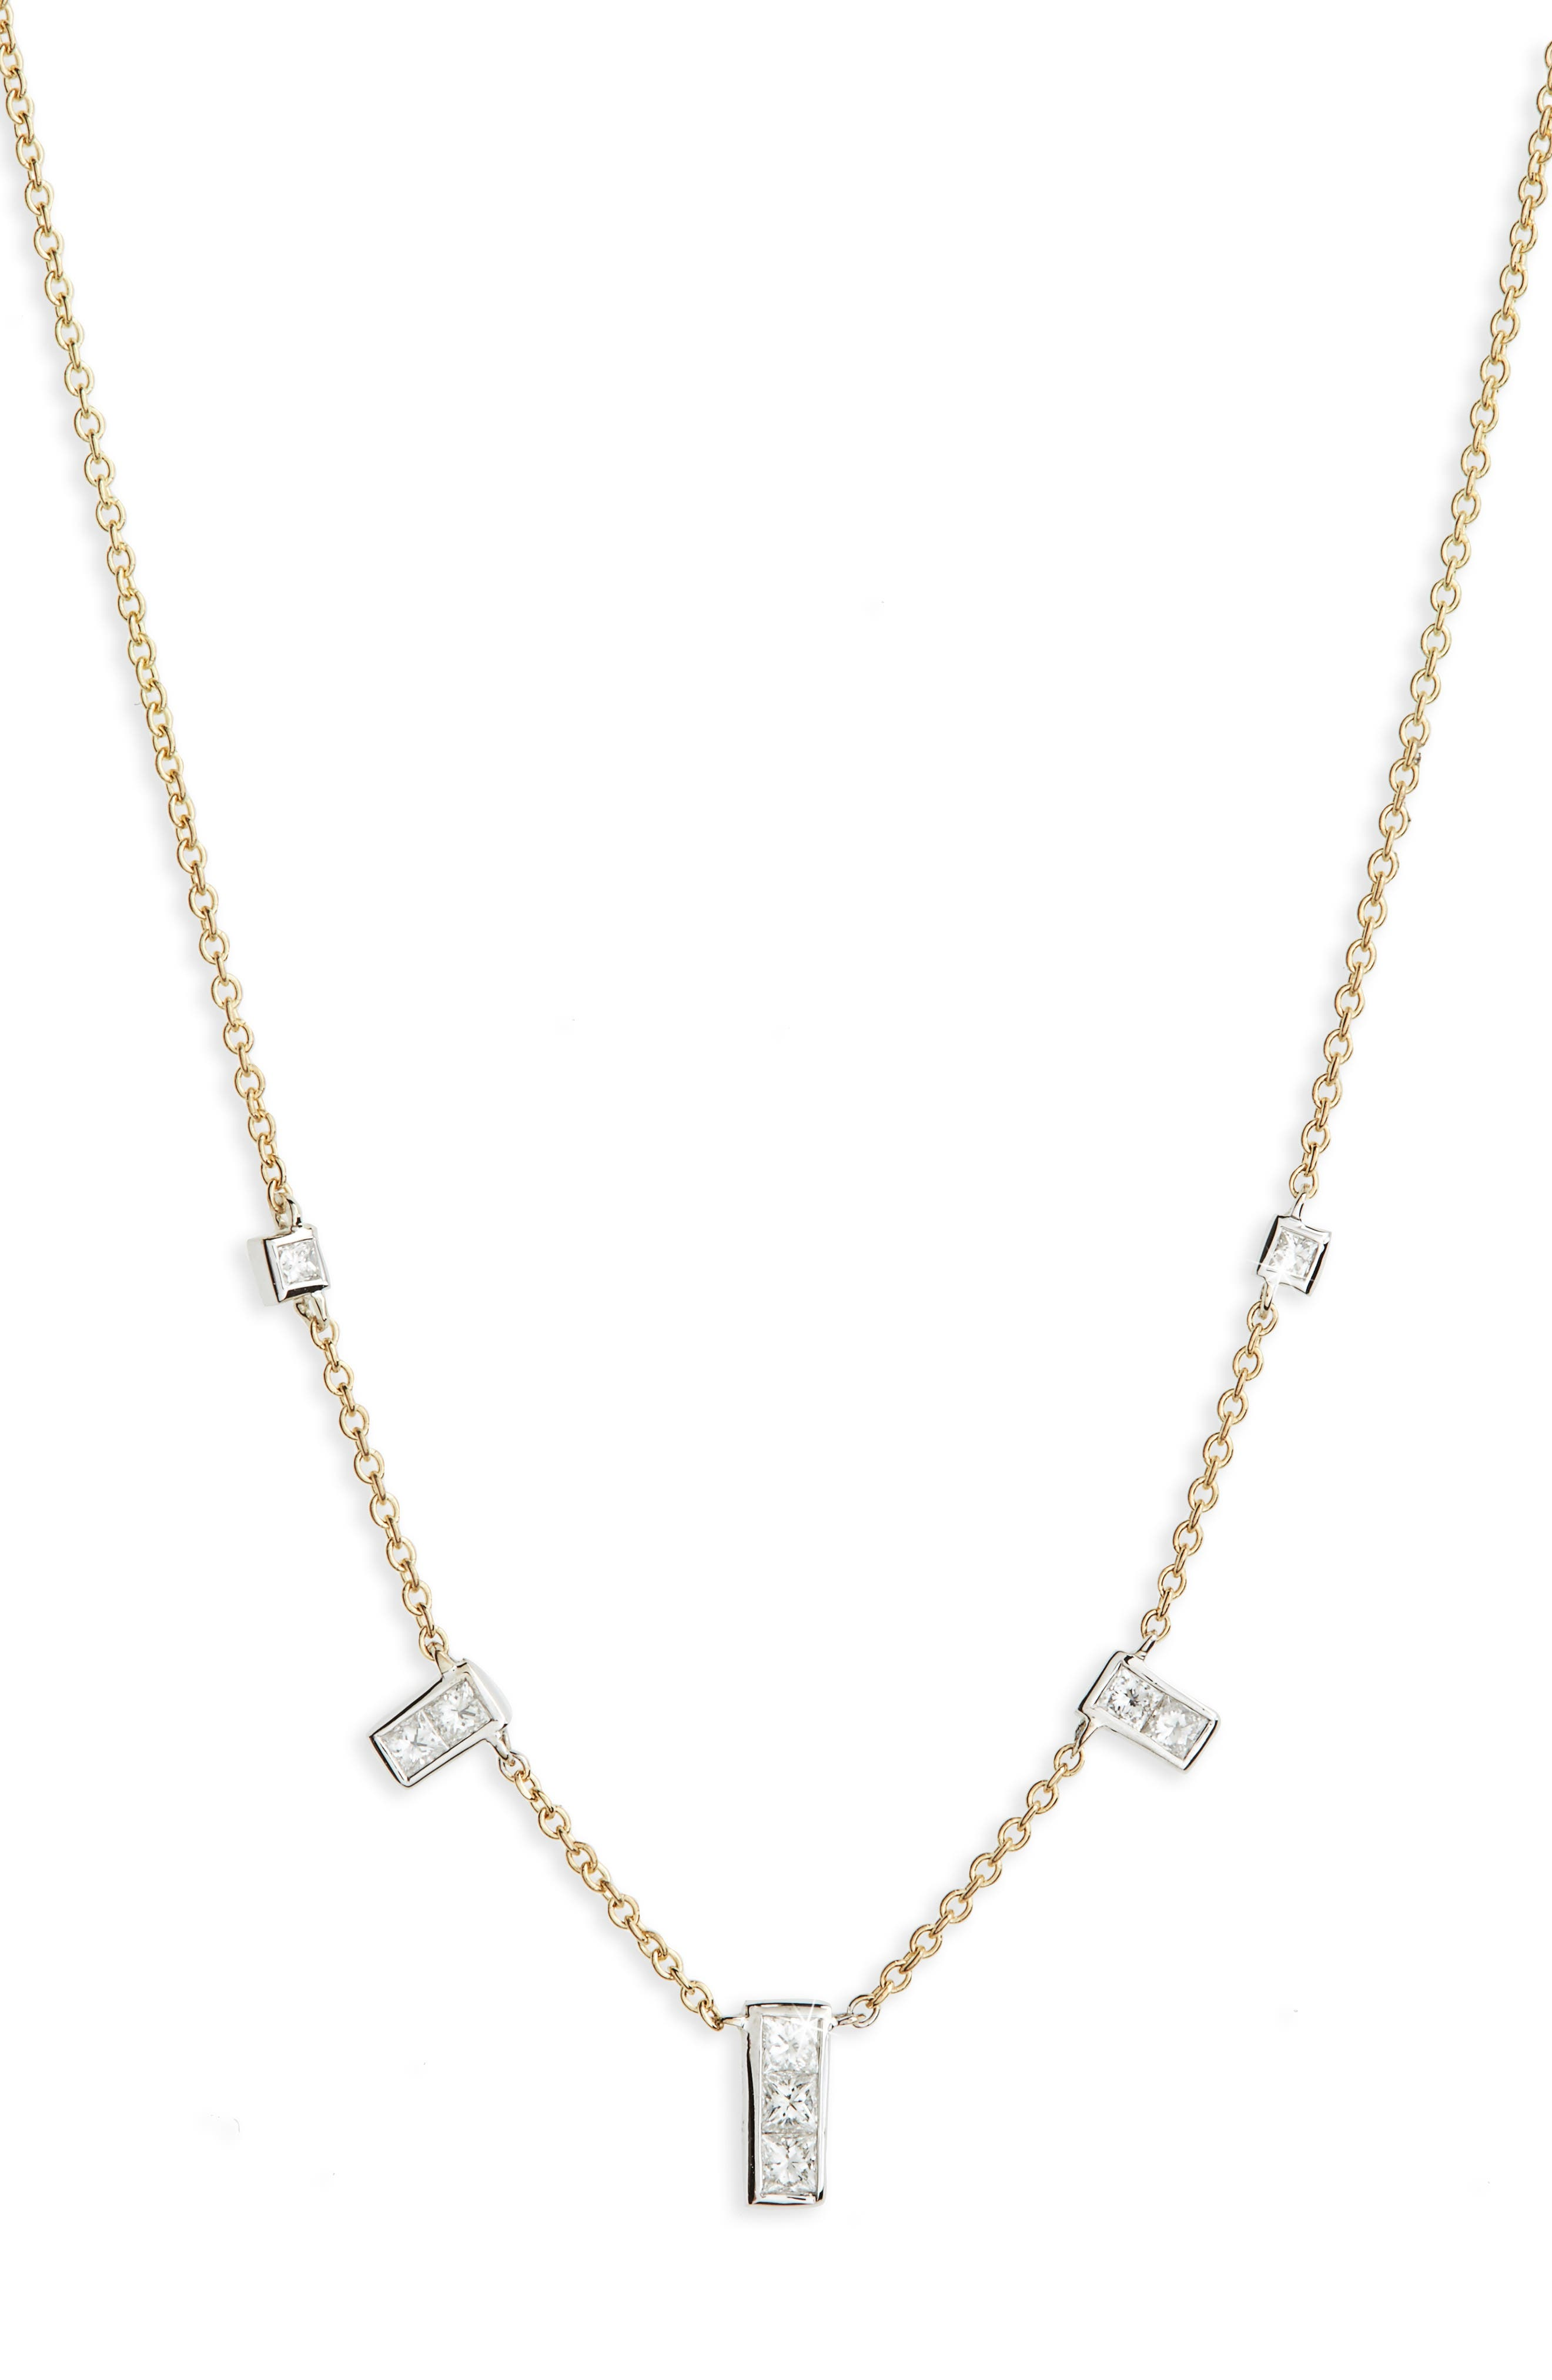 Diamond Rectangle Dangle Station Necklace,                         Main,                         color, Yellow Gold/ White Gold